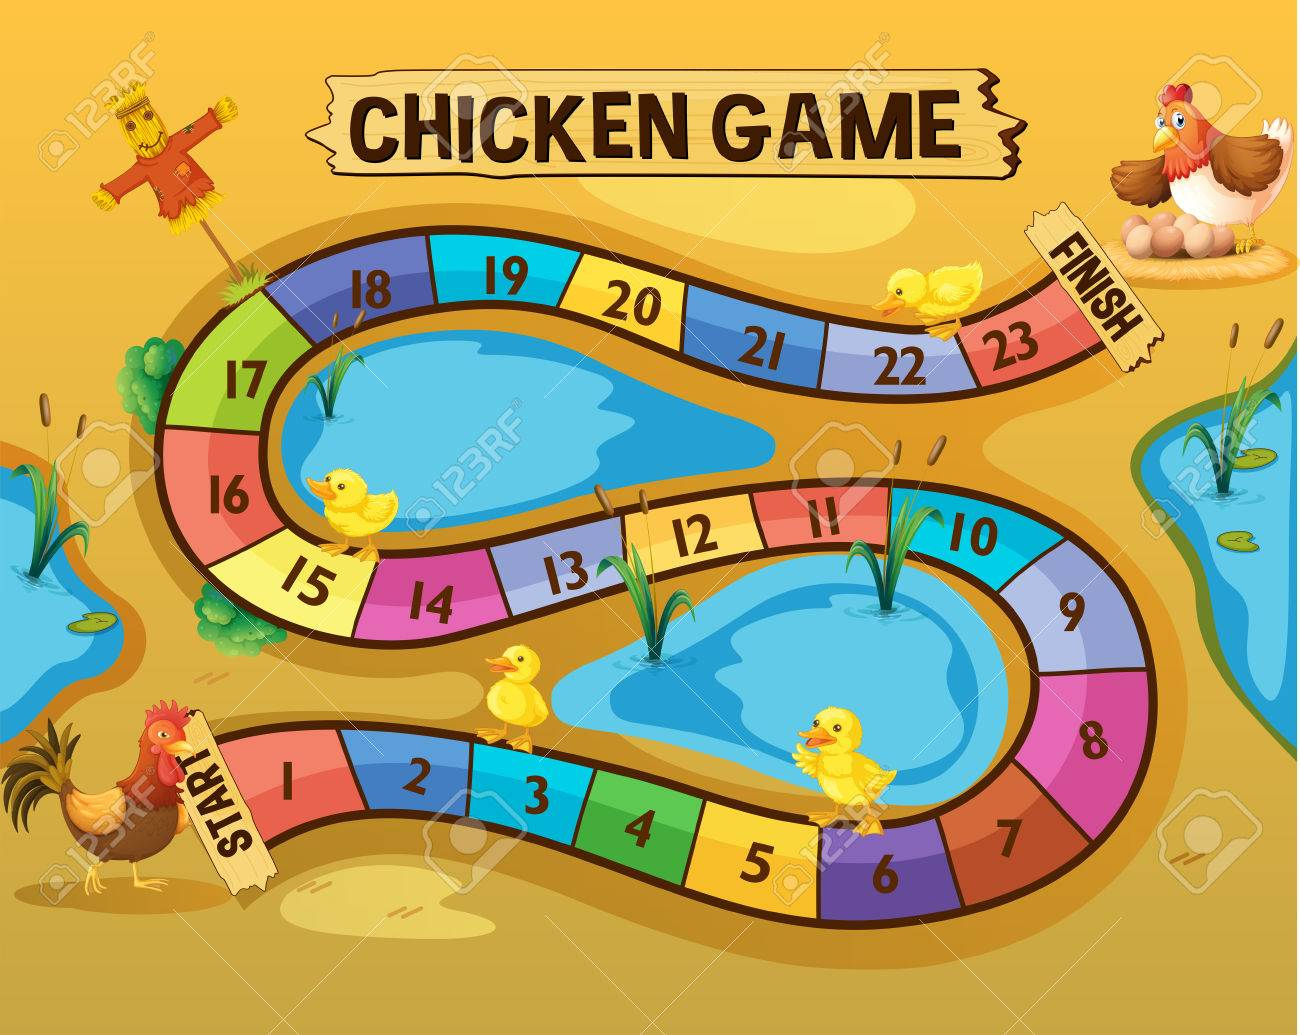 boardgame template with chickens by the pond illustration royalty